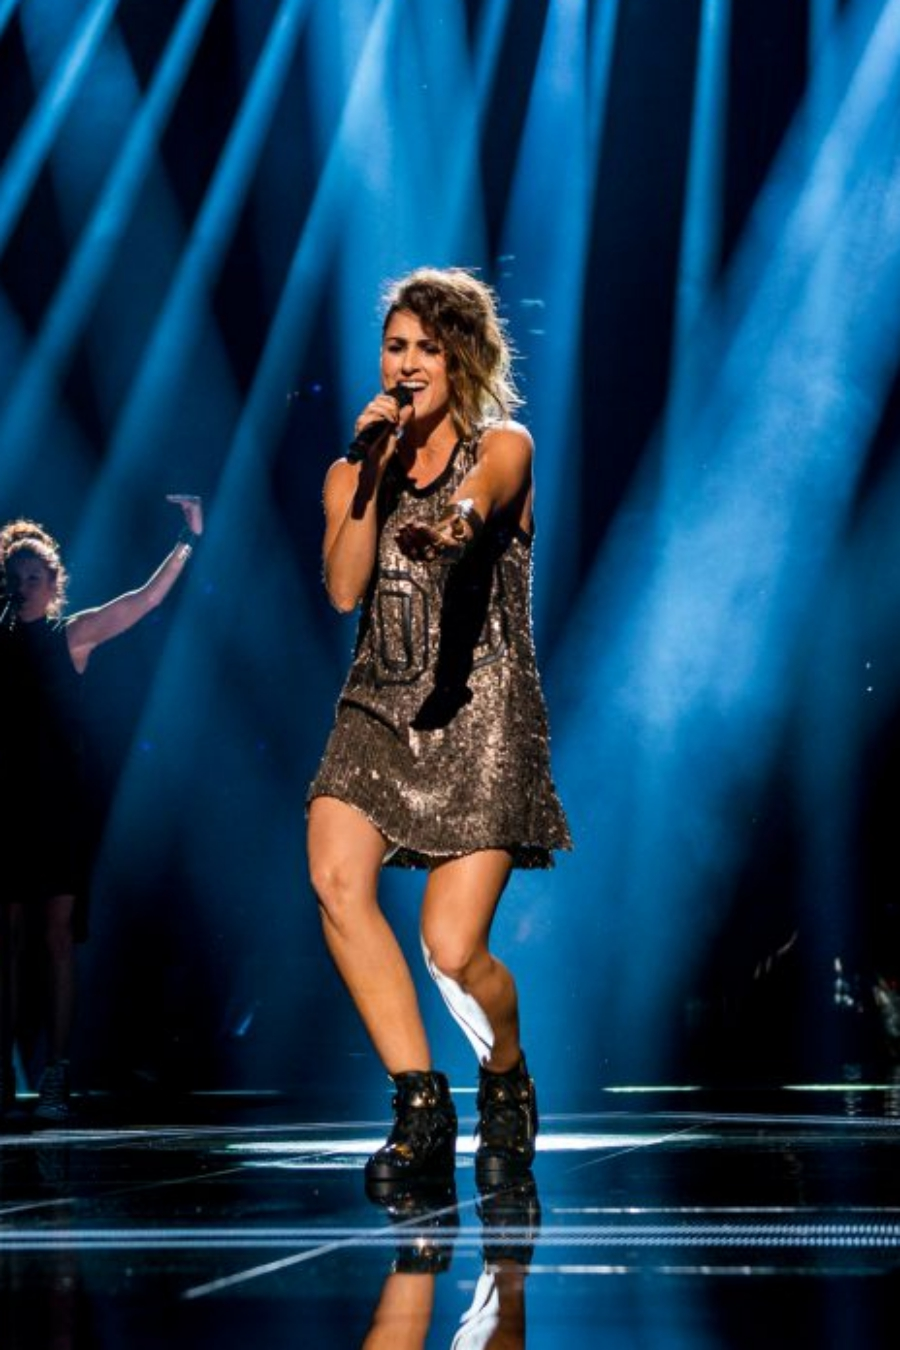 Eurovision Song Contest 2016: Spain